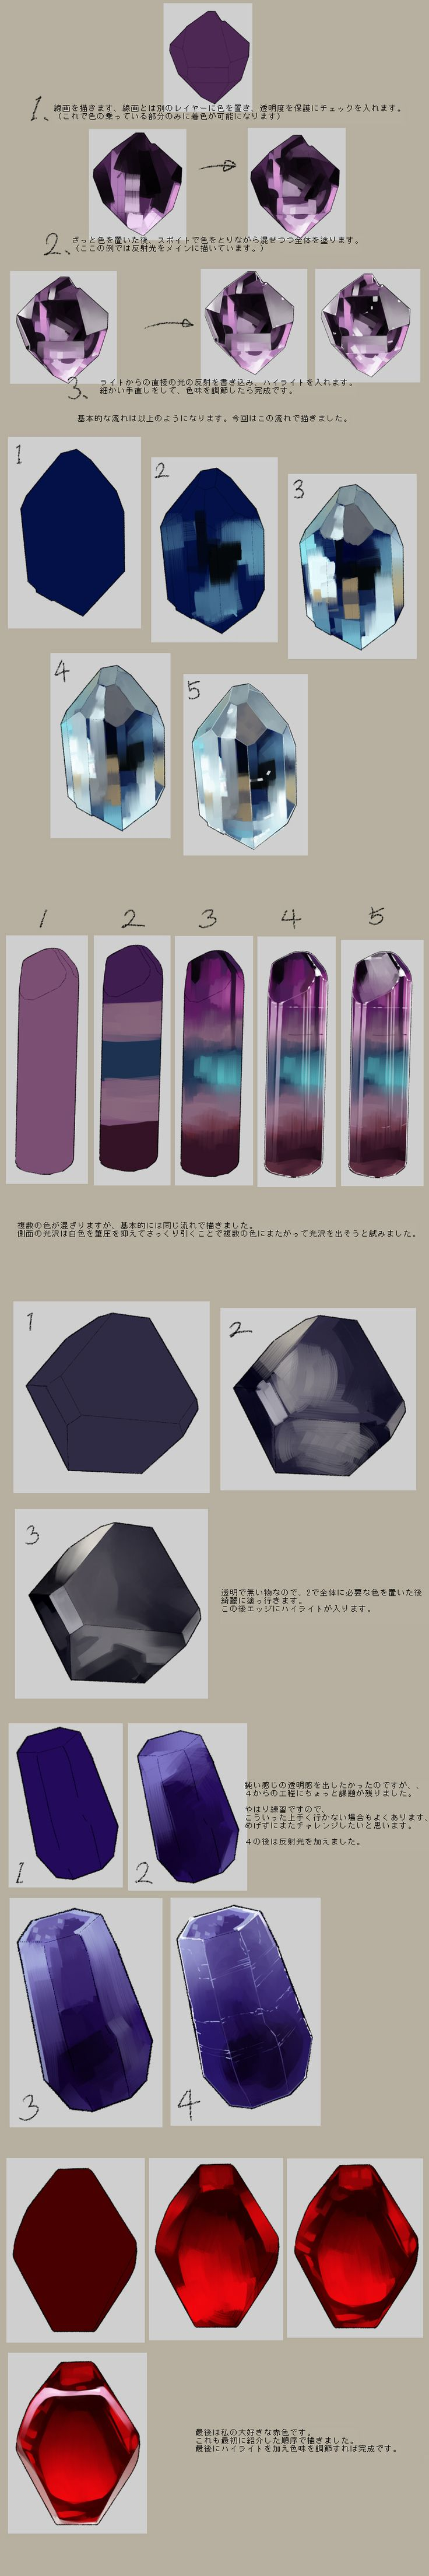 Painting gemstones by shihou